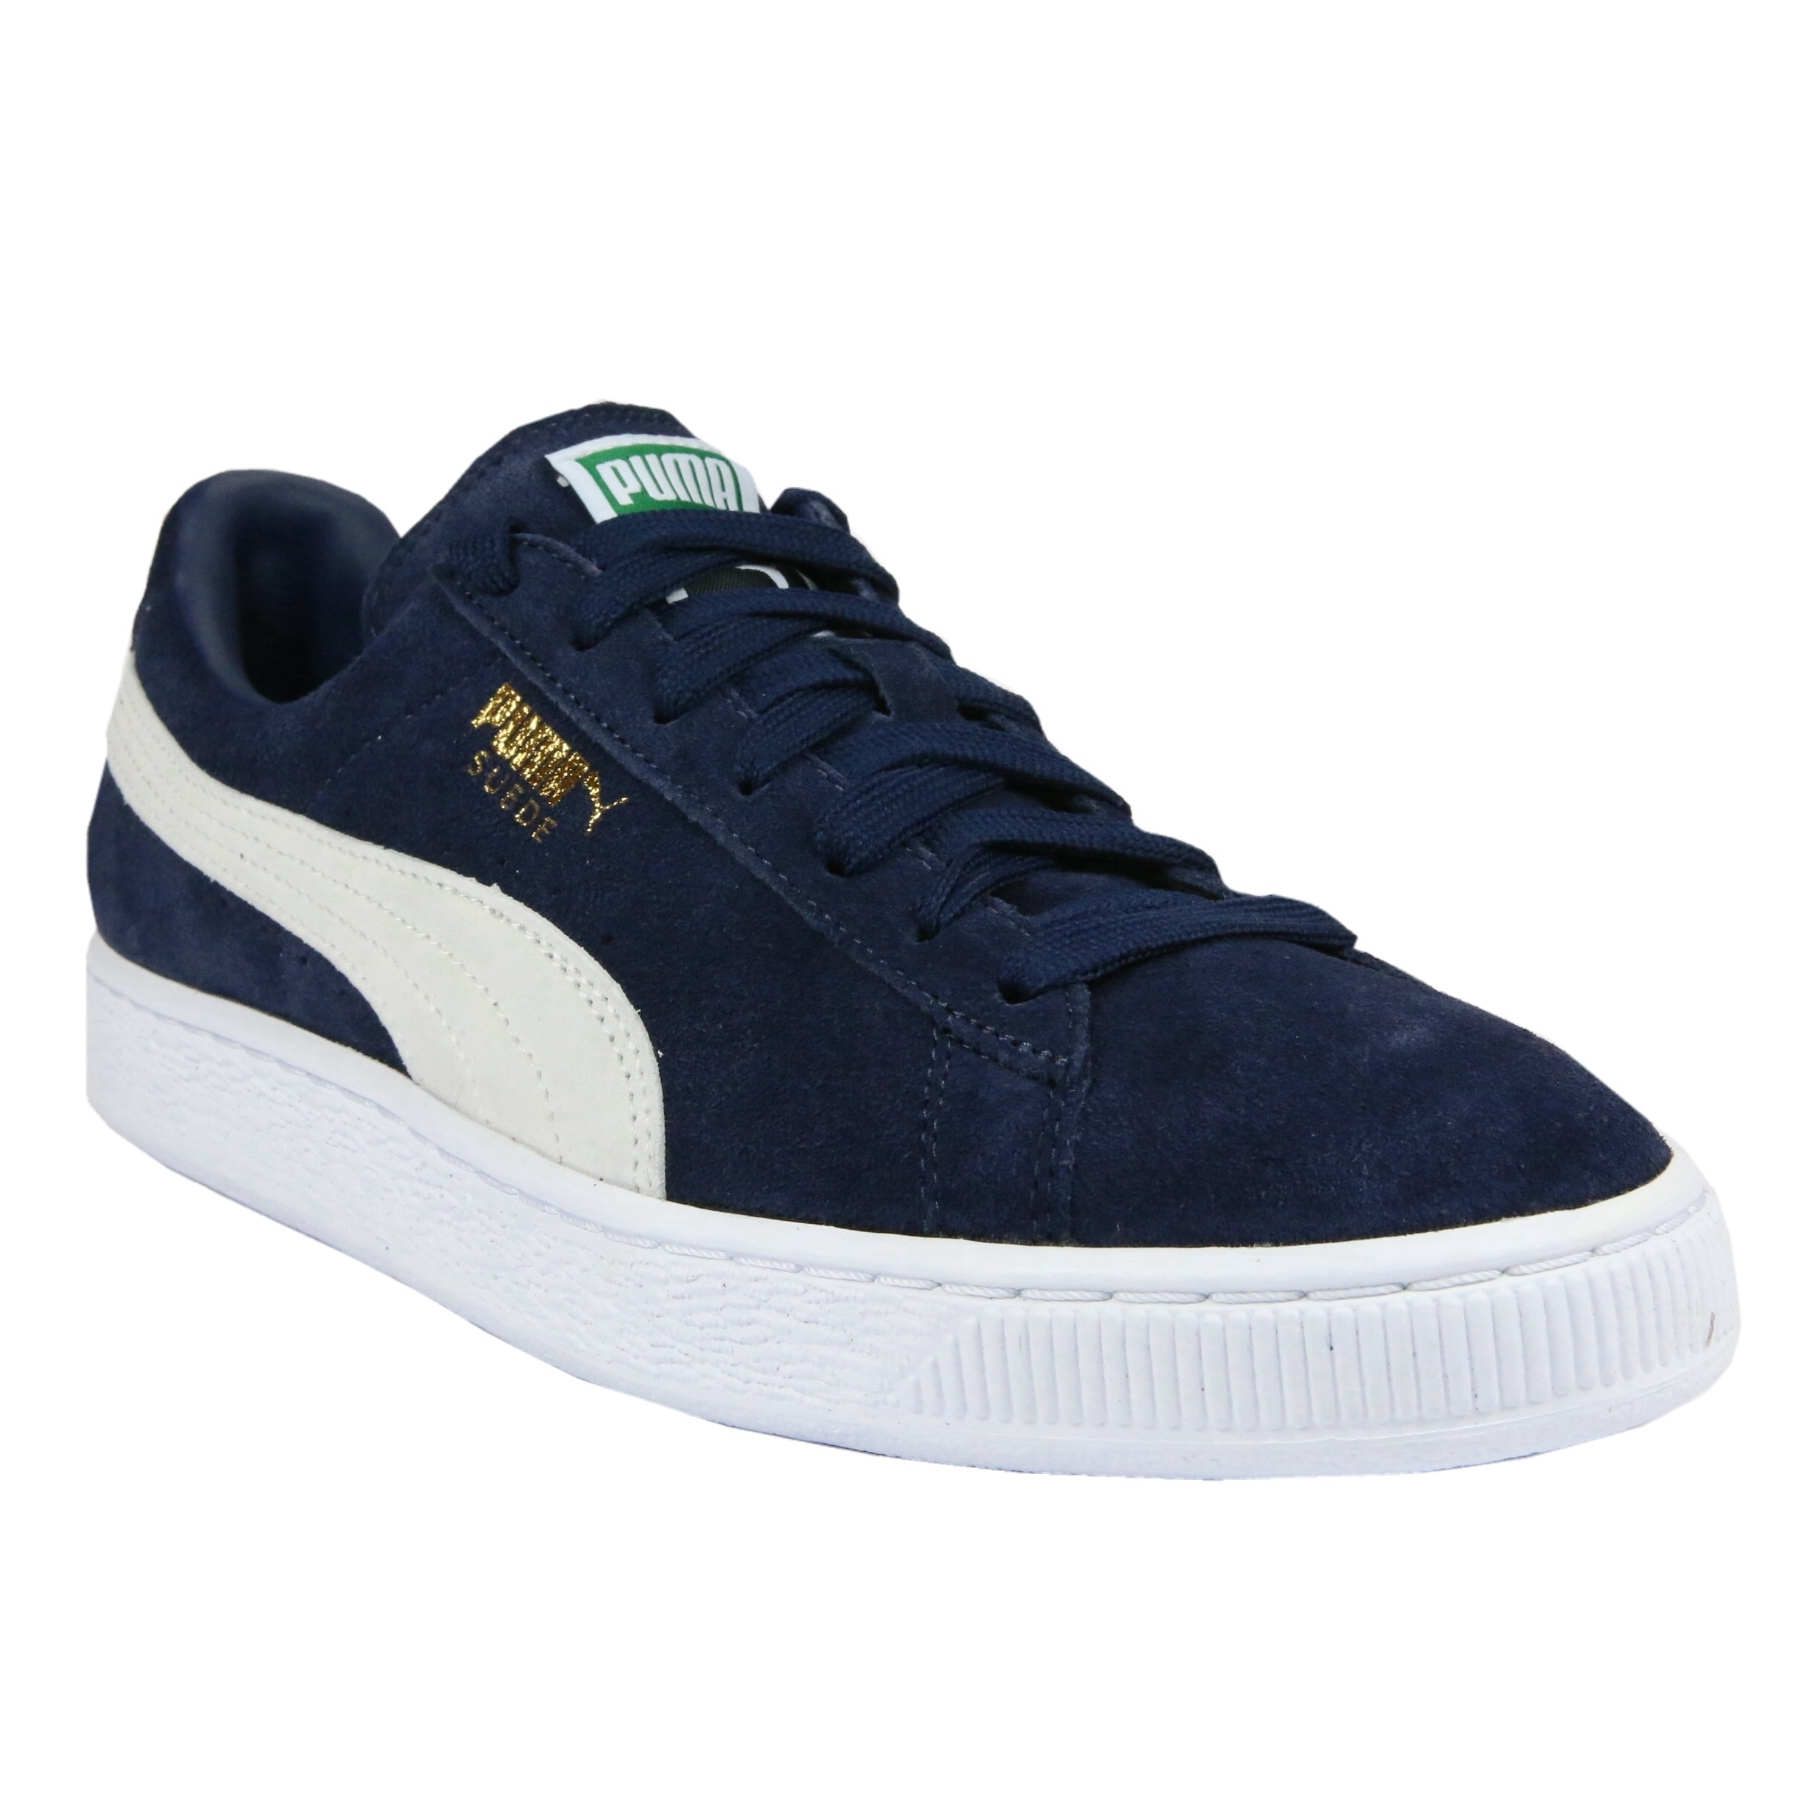 puma suede classic schuhe turnschuhe sneaker wildleder damen herren ebay. Black Bedroom Furniture Sets. Home Design Ideas